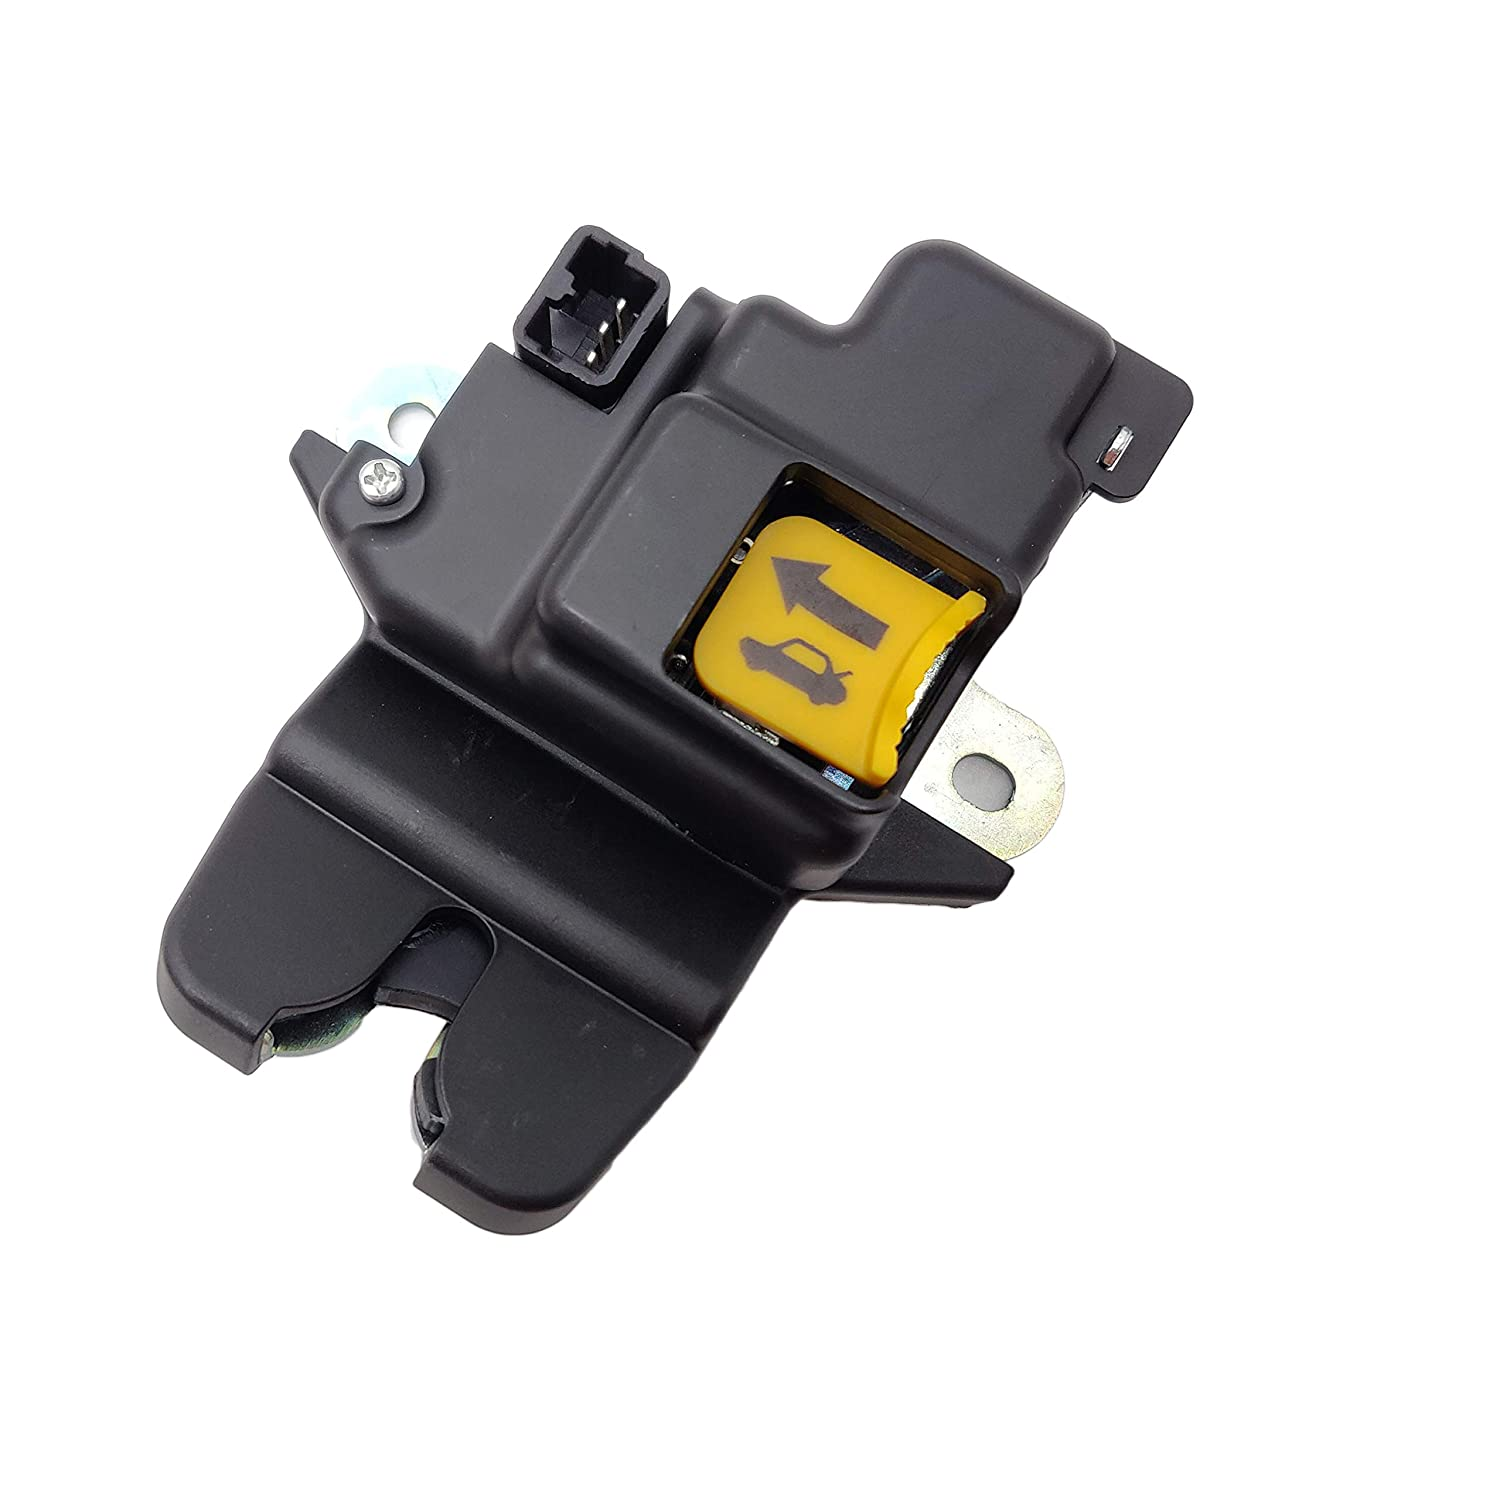 NEW Rear Tailgate Trunk Latch fit for 2011-2016 Hyundai Elantra 81230-3X010 US